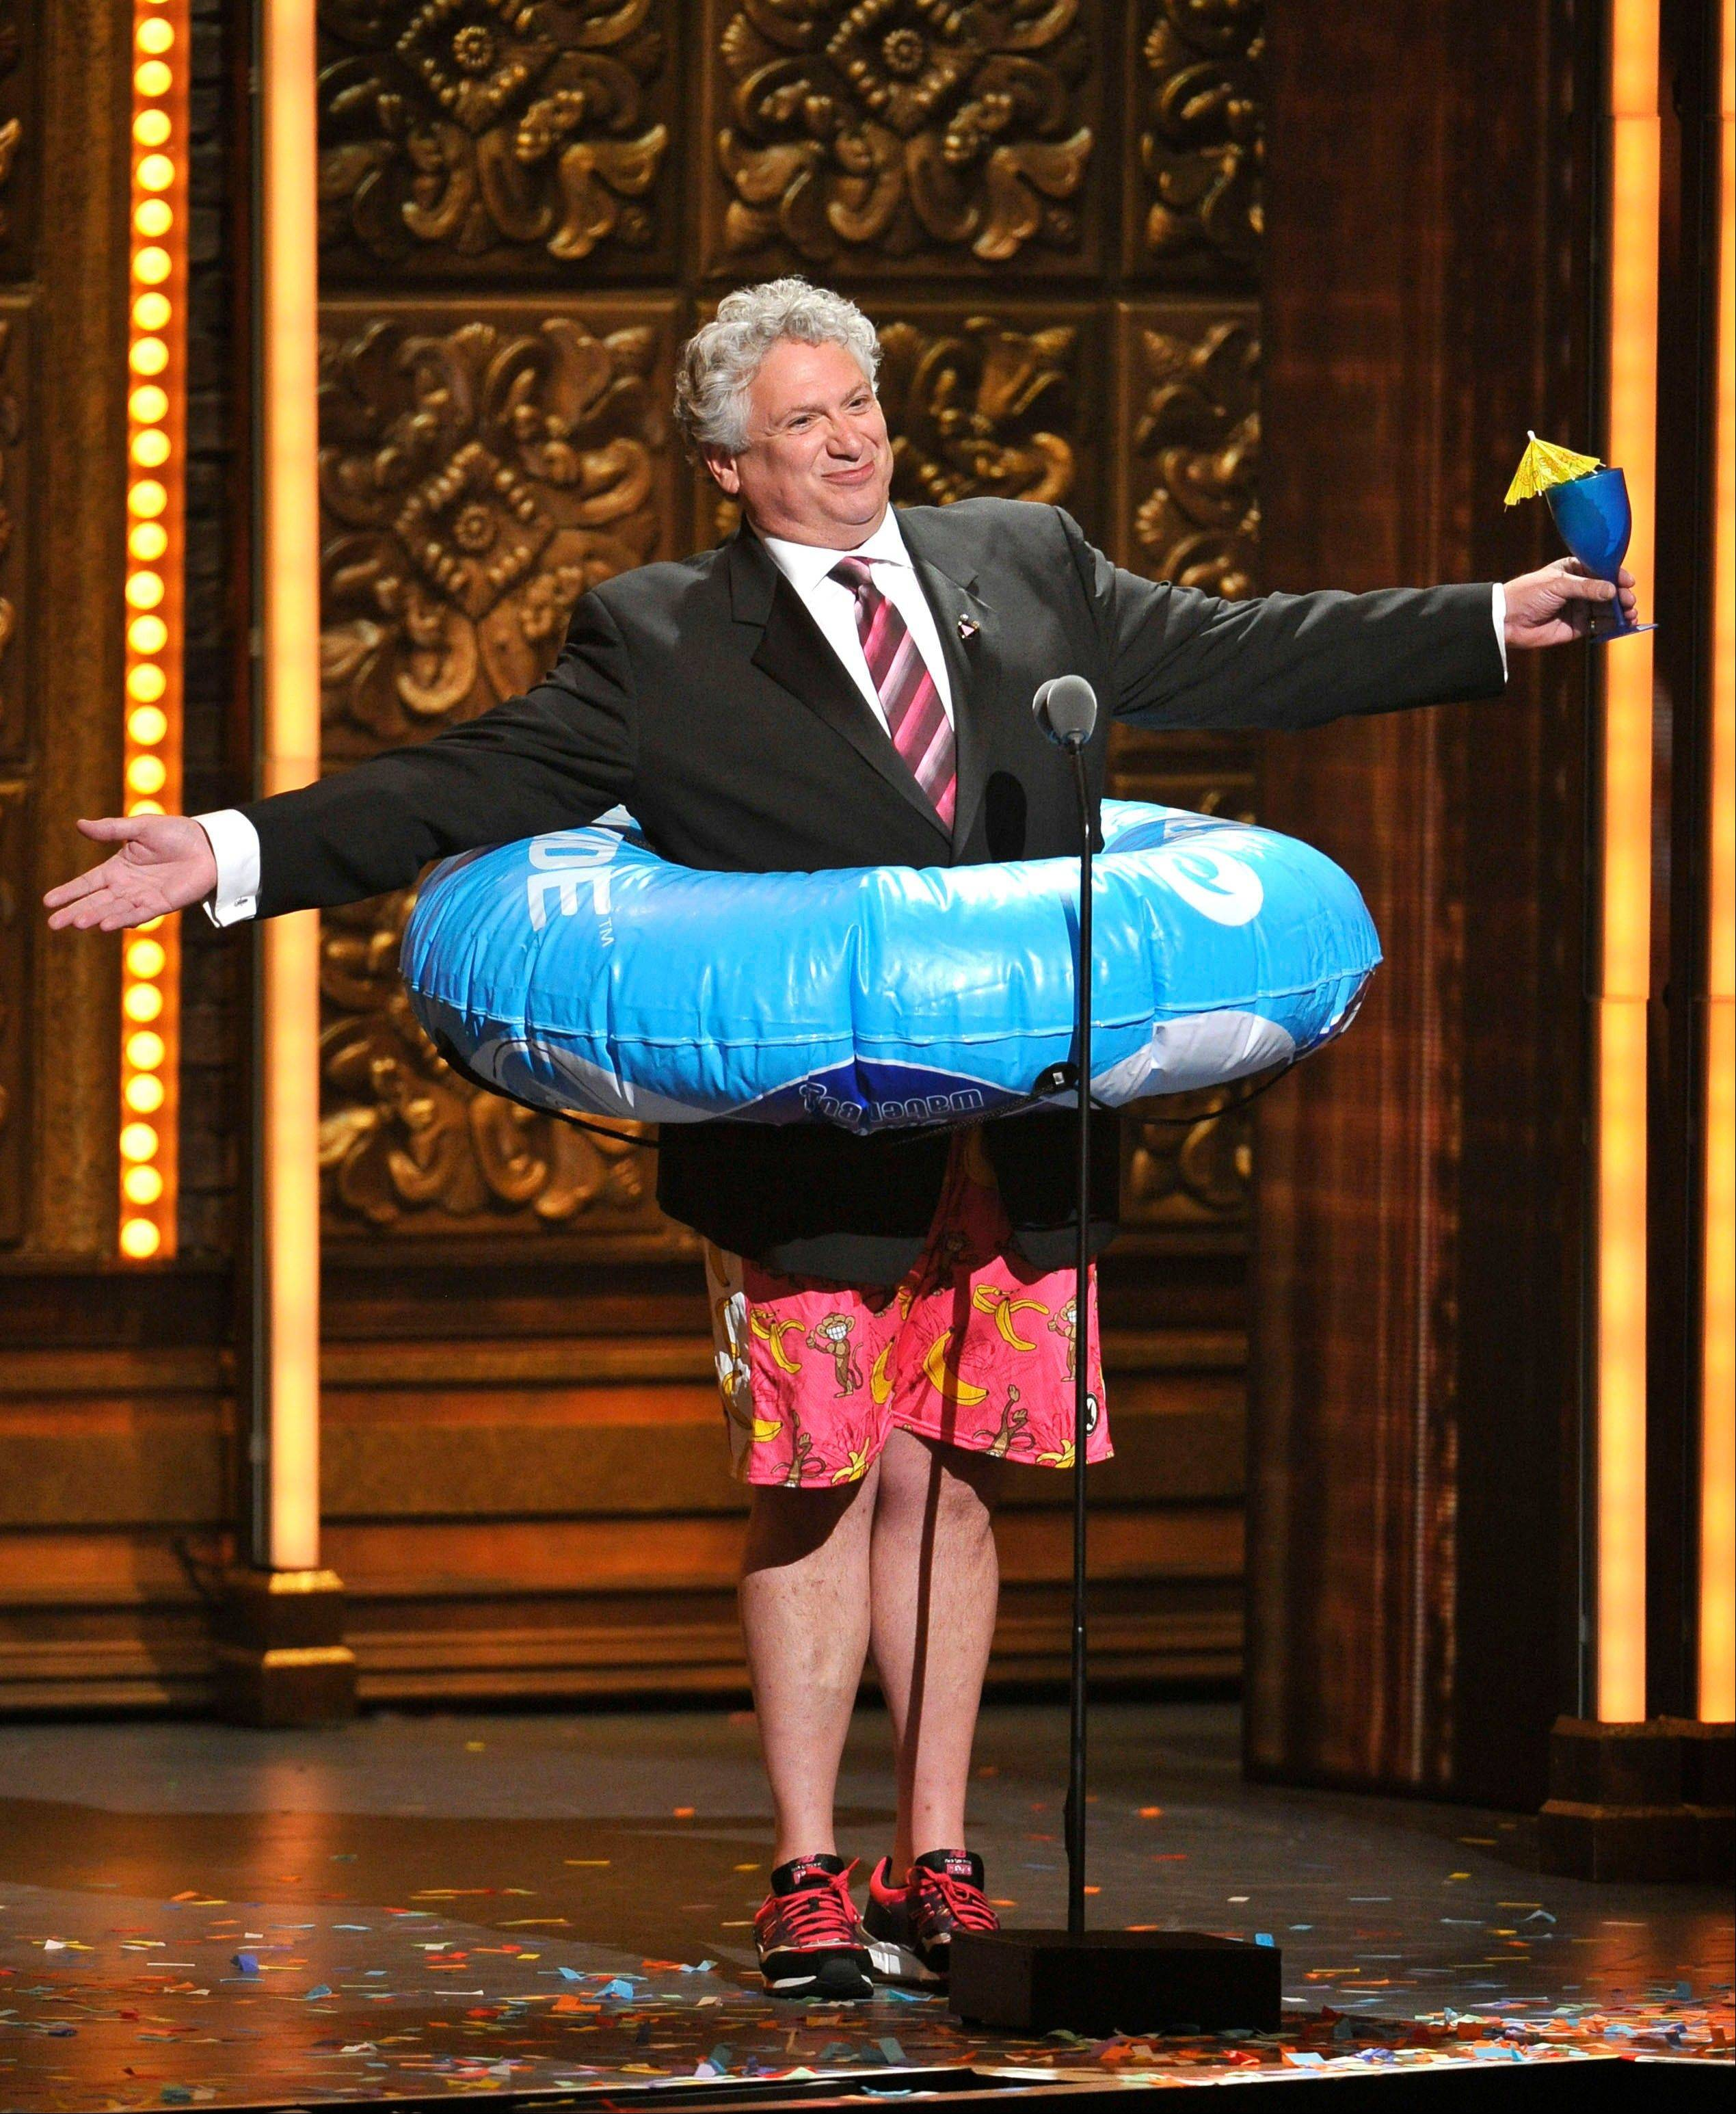 Harvey Fierstein has a little fun during the 66th Annual Tony Awards on Sunday in New York.